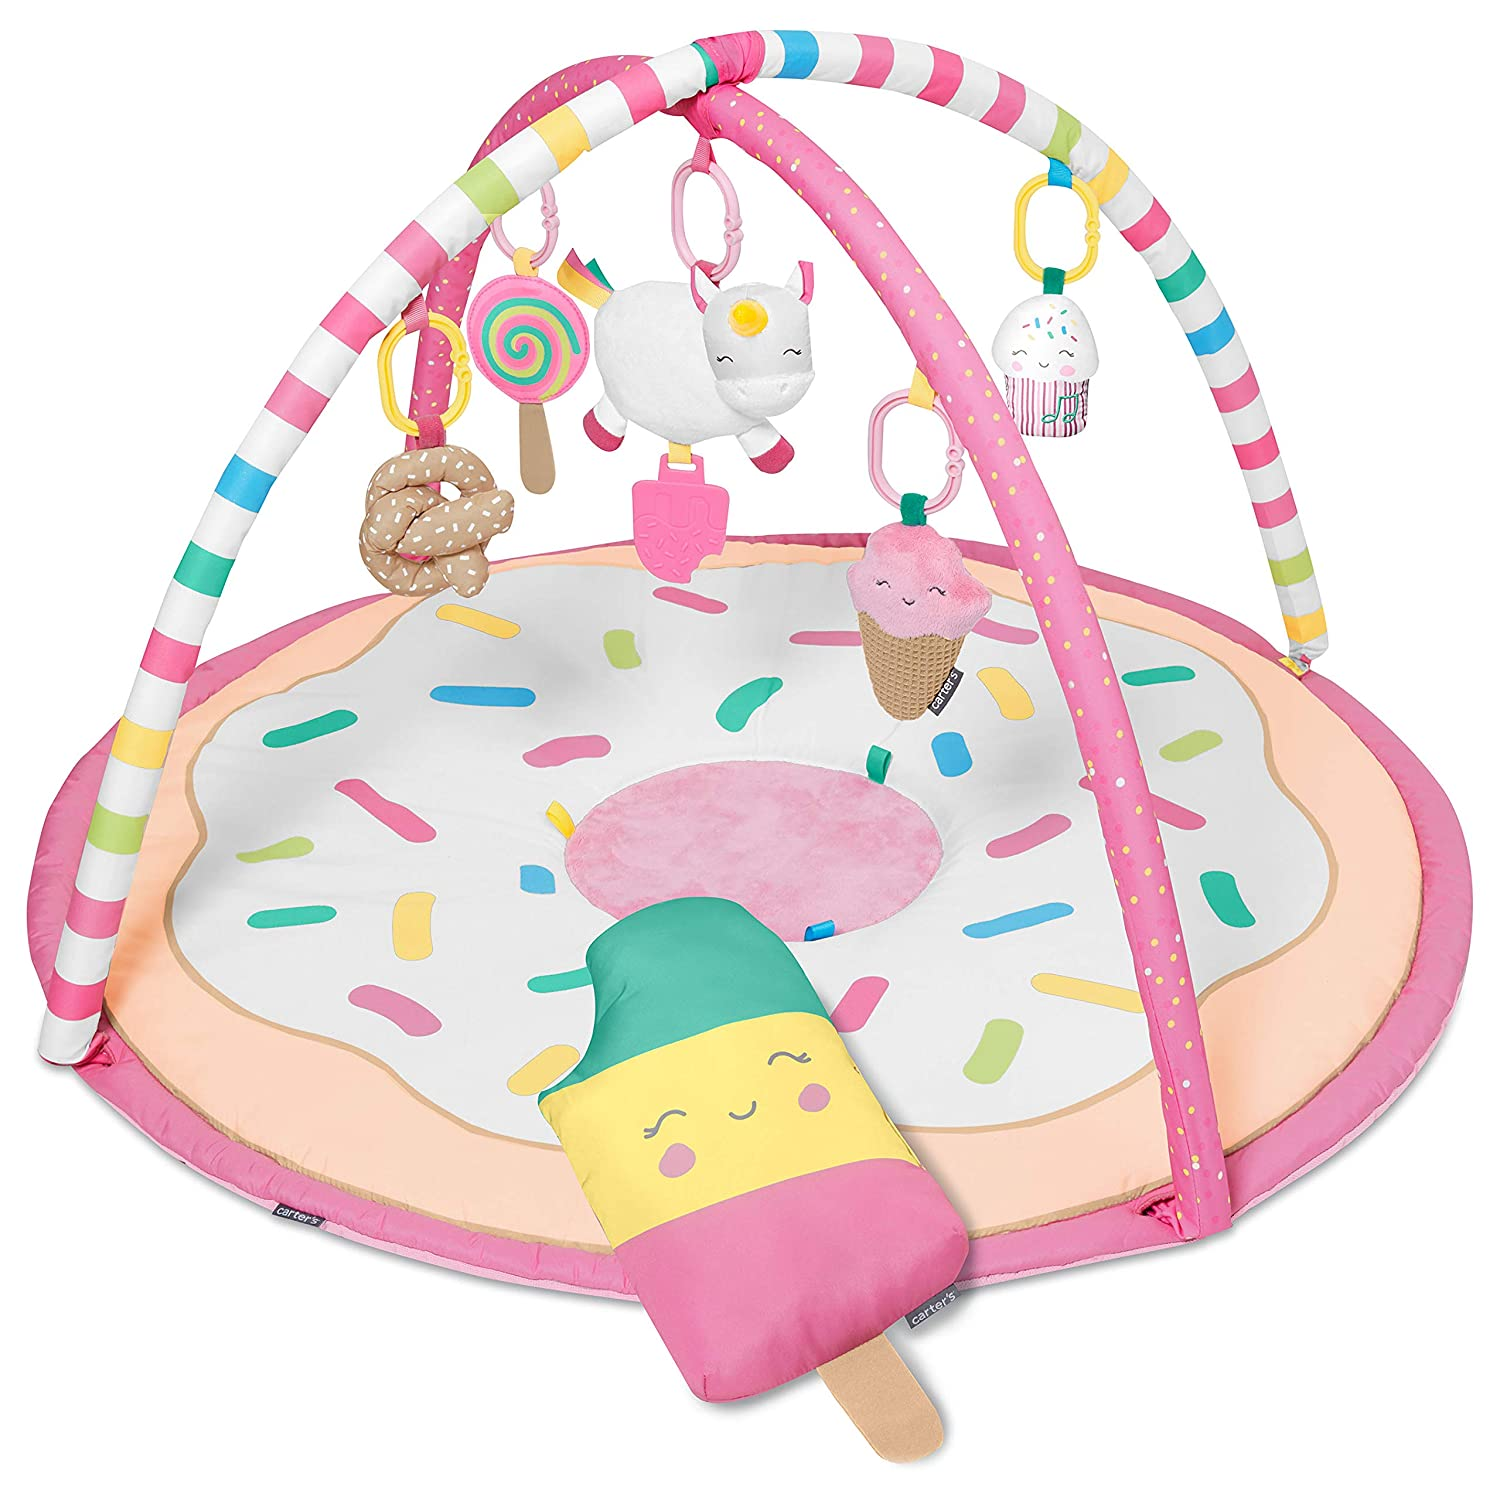 Carter s Sweet Surprise Baby Activity Gym, Pink